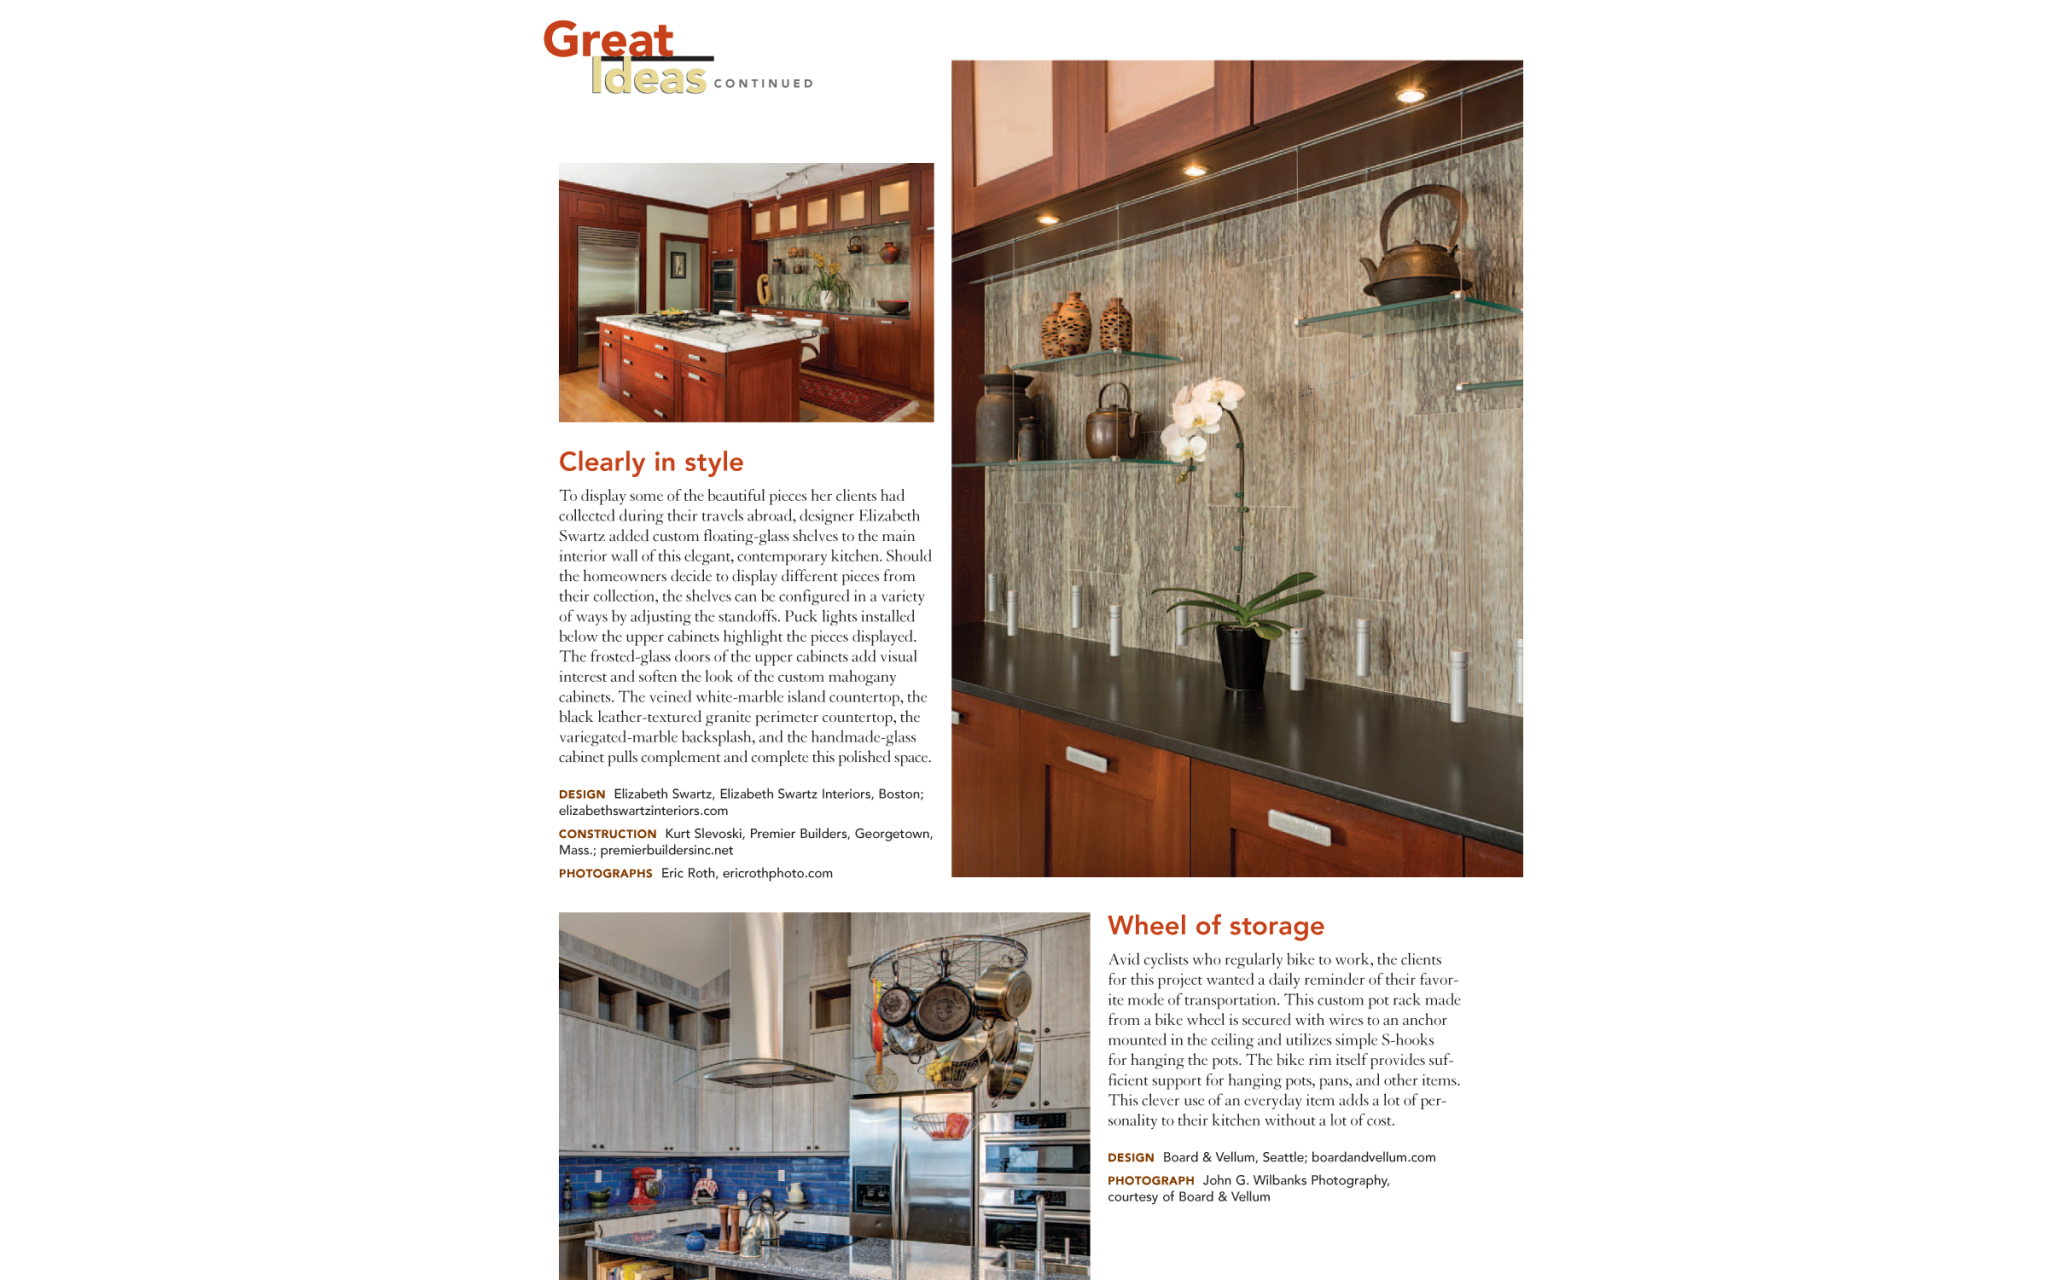 Fine Homebuilding Kitchens & Baths article featuring a kitchen design by Boston Interior Designer Elizabeth Swartz Interiors.